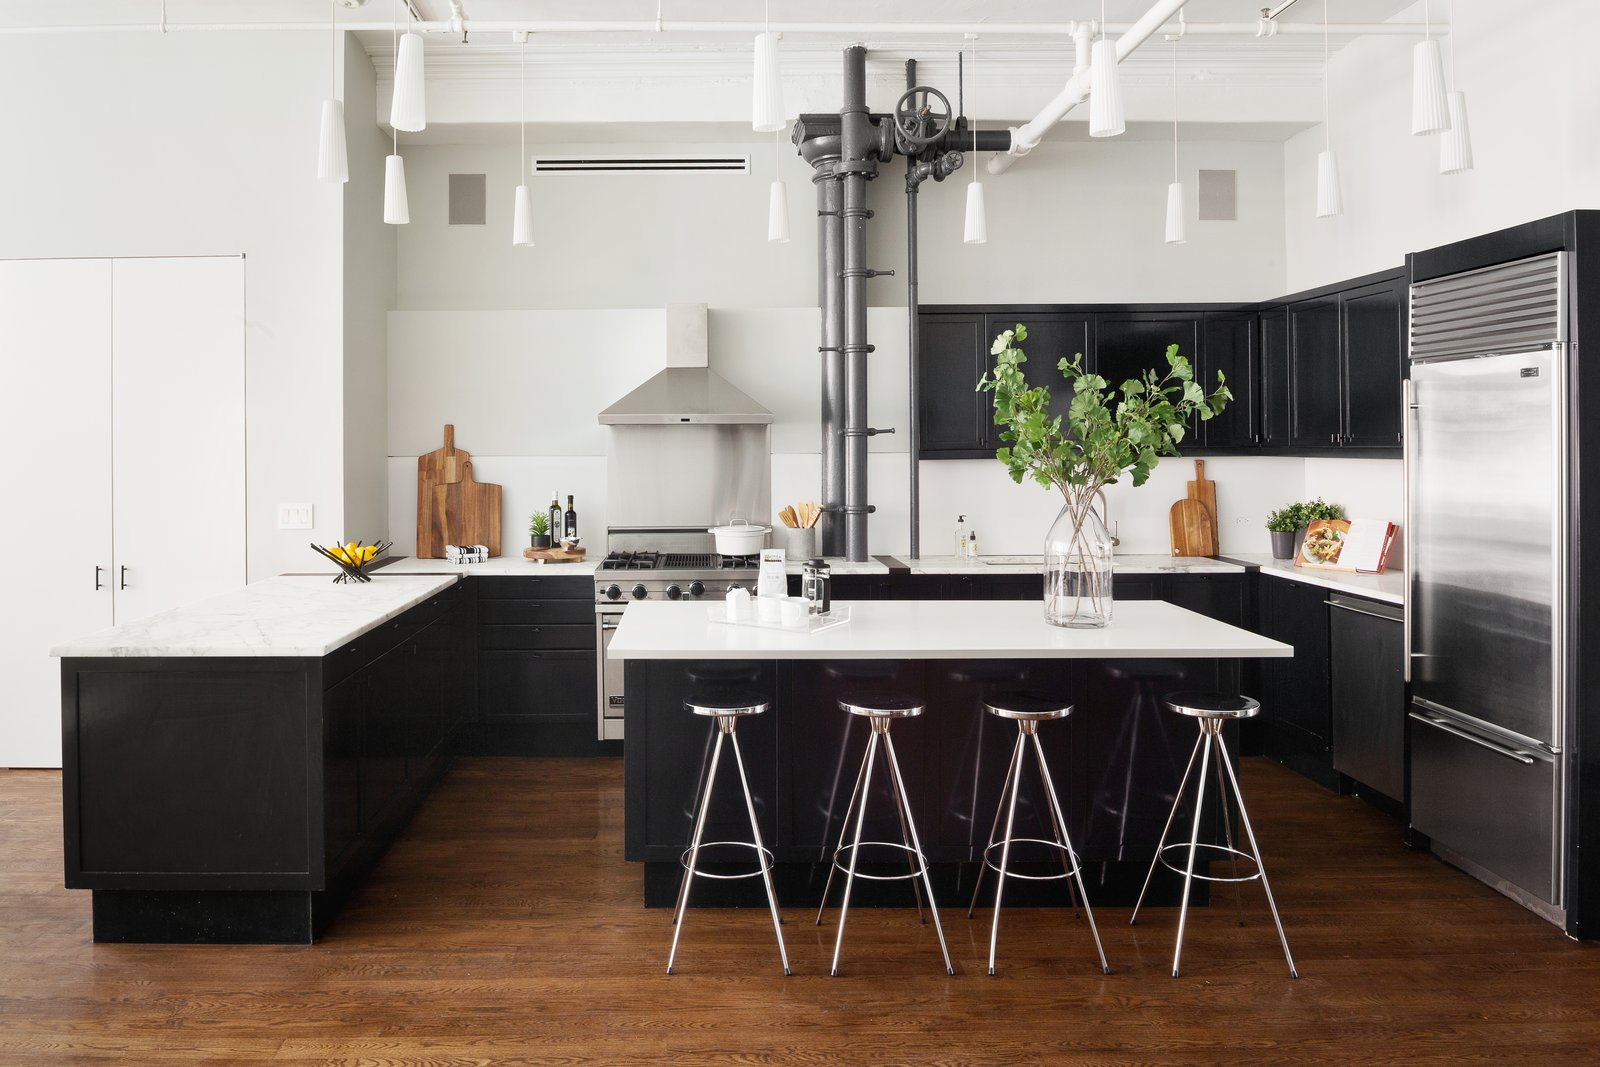 Kitchen, Medium Hardwood, Refrigerator, Range Hood, Wine Cooler, Dishwasher, Wood, Drop In, Range, and Track The chef's kitchen has an eat-in counter, Miele appliances, and a wine cooler.  Best Kitchen Track Medium Hardwood Photos from Classic Soho Loft